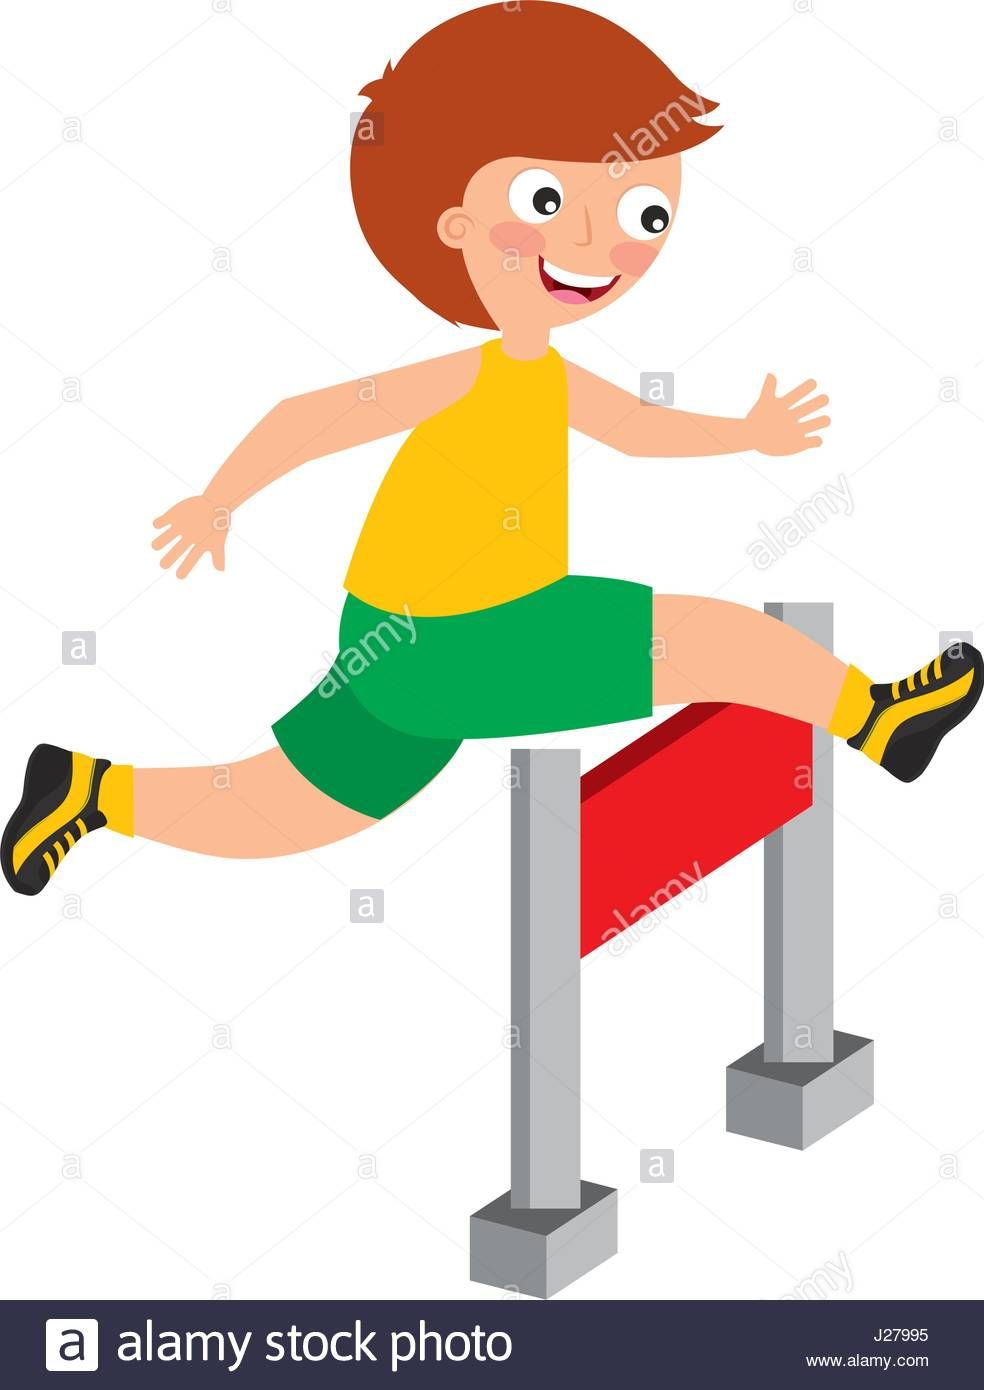 image result for children jumping hurdles clipart running the rh pinterest com